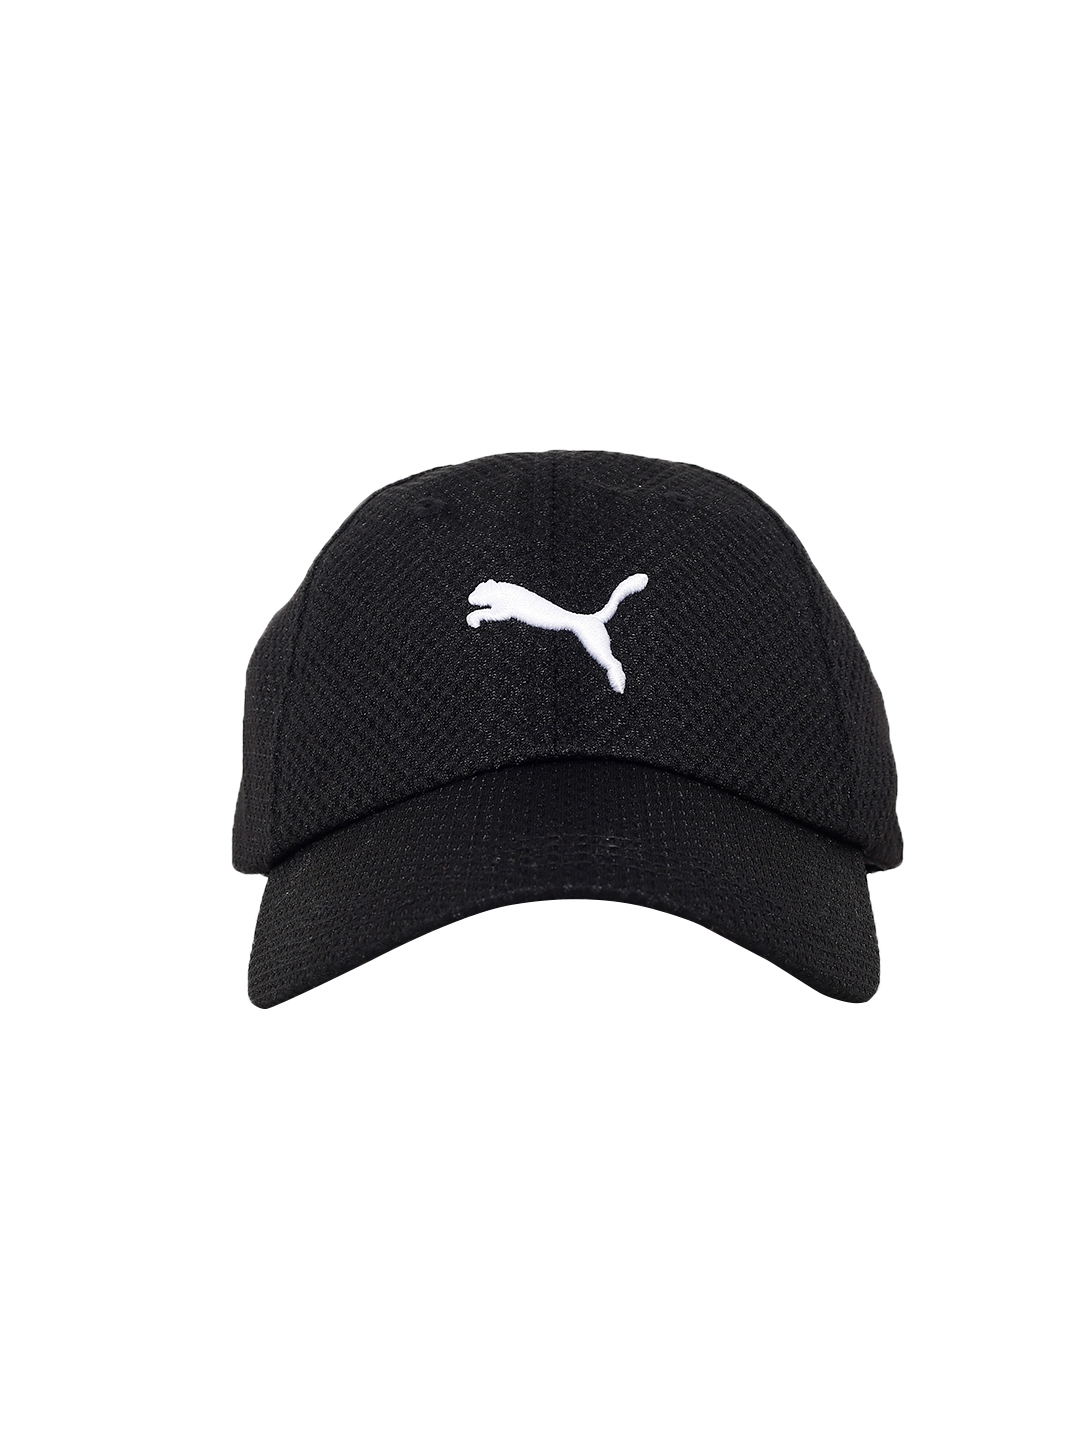 best sell entire collection pretty cheap Buy Puma Unisex Black Solid Training Mesh Baseball Cap - Caps for ...